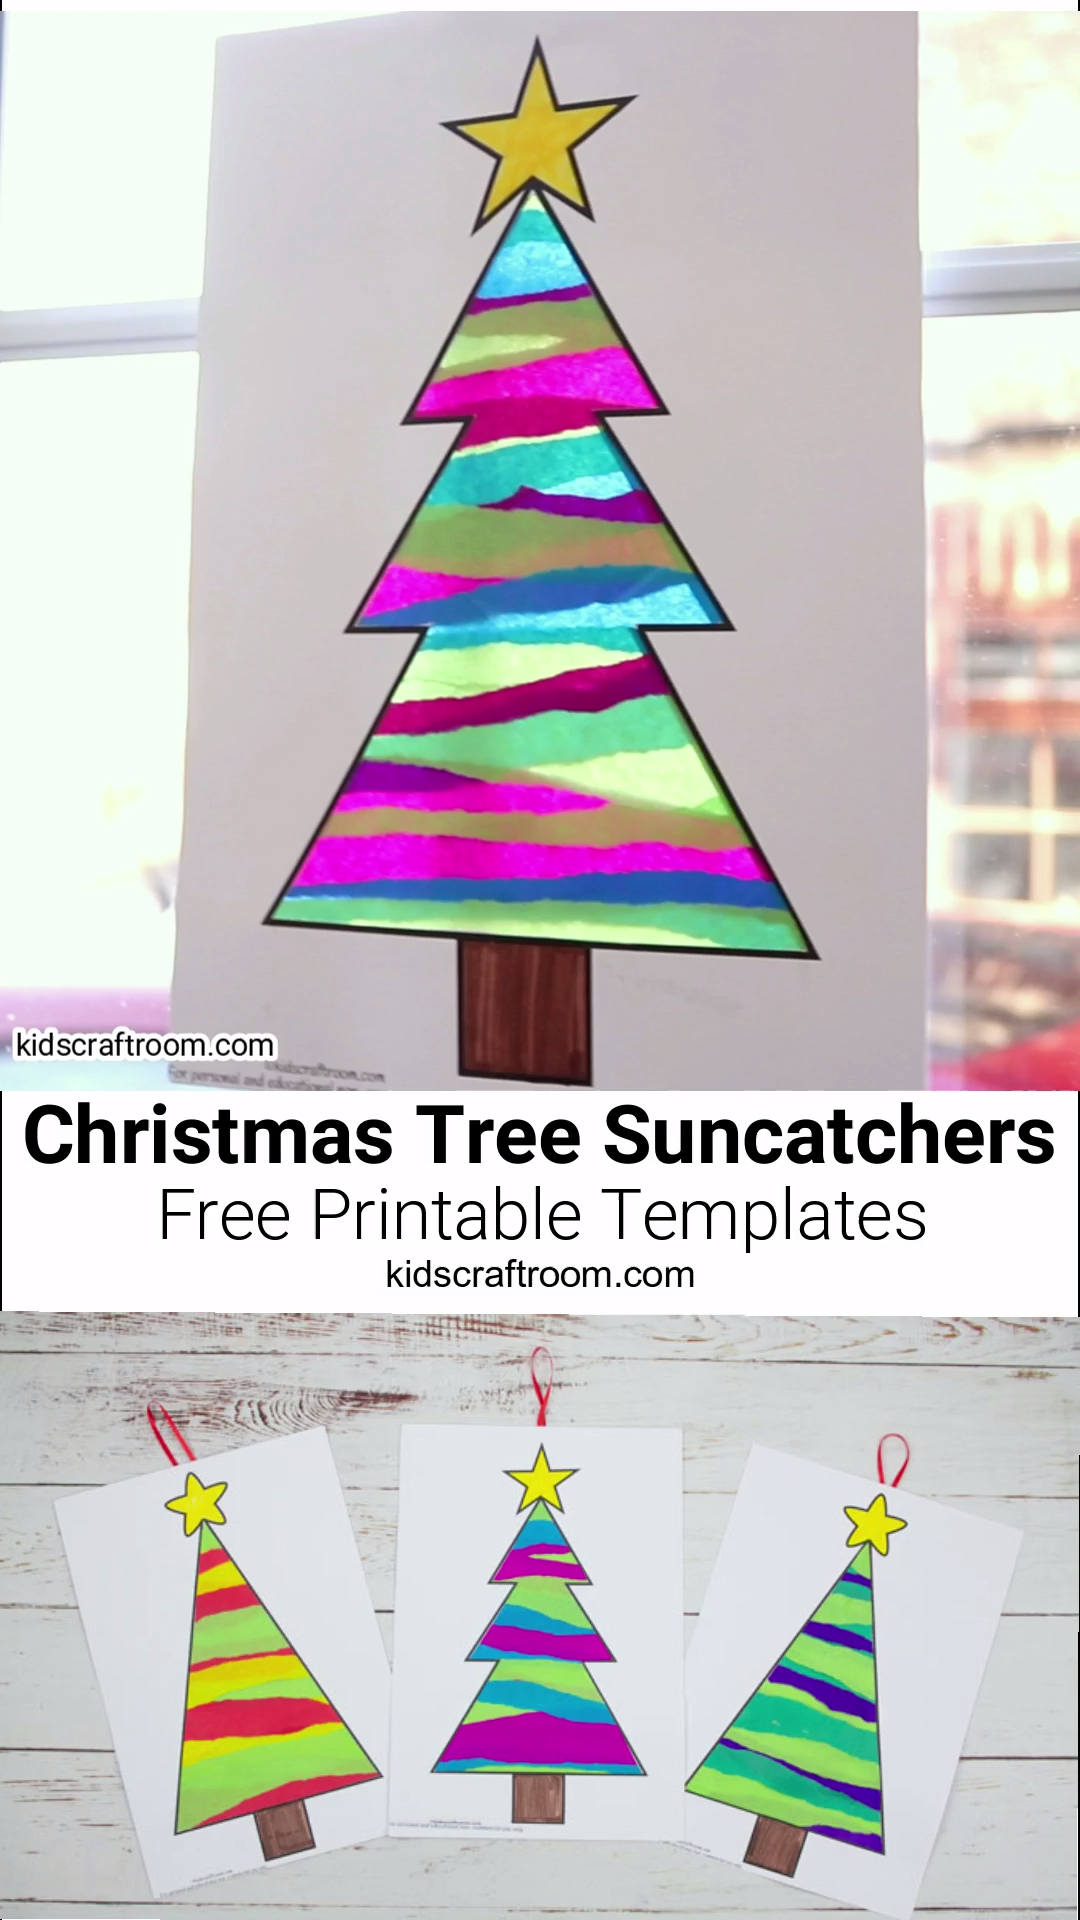 This Tissue Paper Christmas Tree Suncatcher Craft is such a pretty Christmas craft for kids. Easy to make with the free printable templates and layers of torn tissue paper. When the light shines through them the colours look amazing, like stained glass! A lovely Christmas suncatcher craft for little and big kids with lots of fun paper tearing to build fine motor skills. #kidscraftroom #Christmascrafts #christmas #suncatchers #suncatcher #christmastree #papercrafts #tissuepaper #kidscrafts #holid